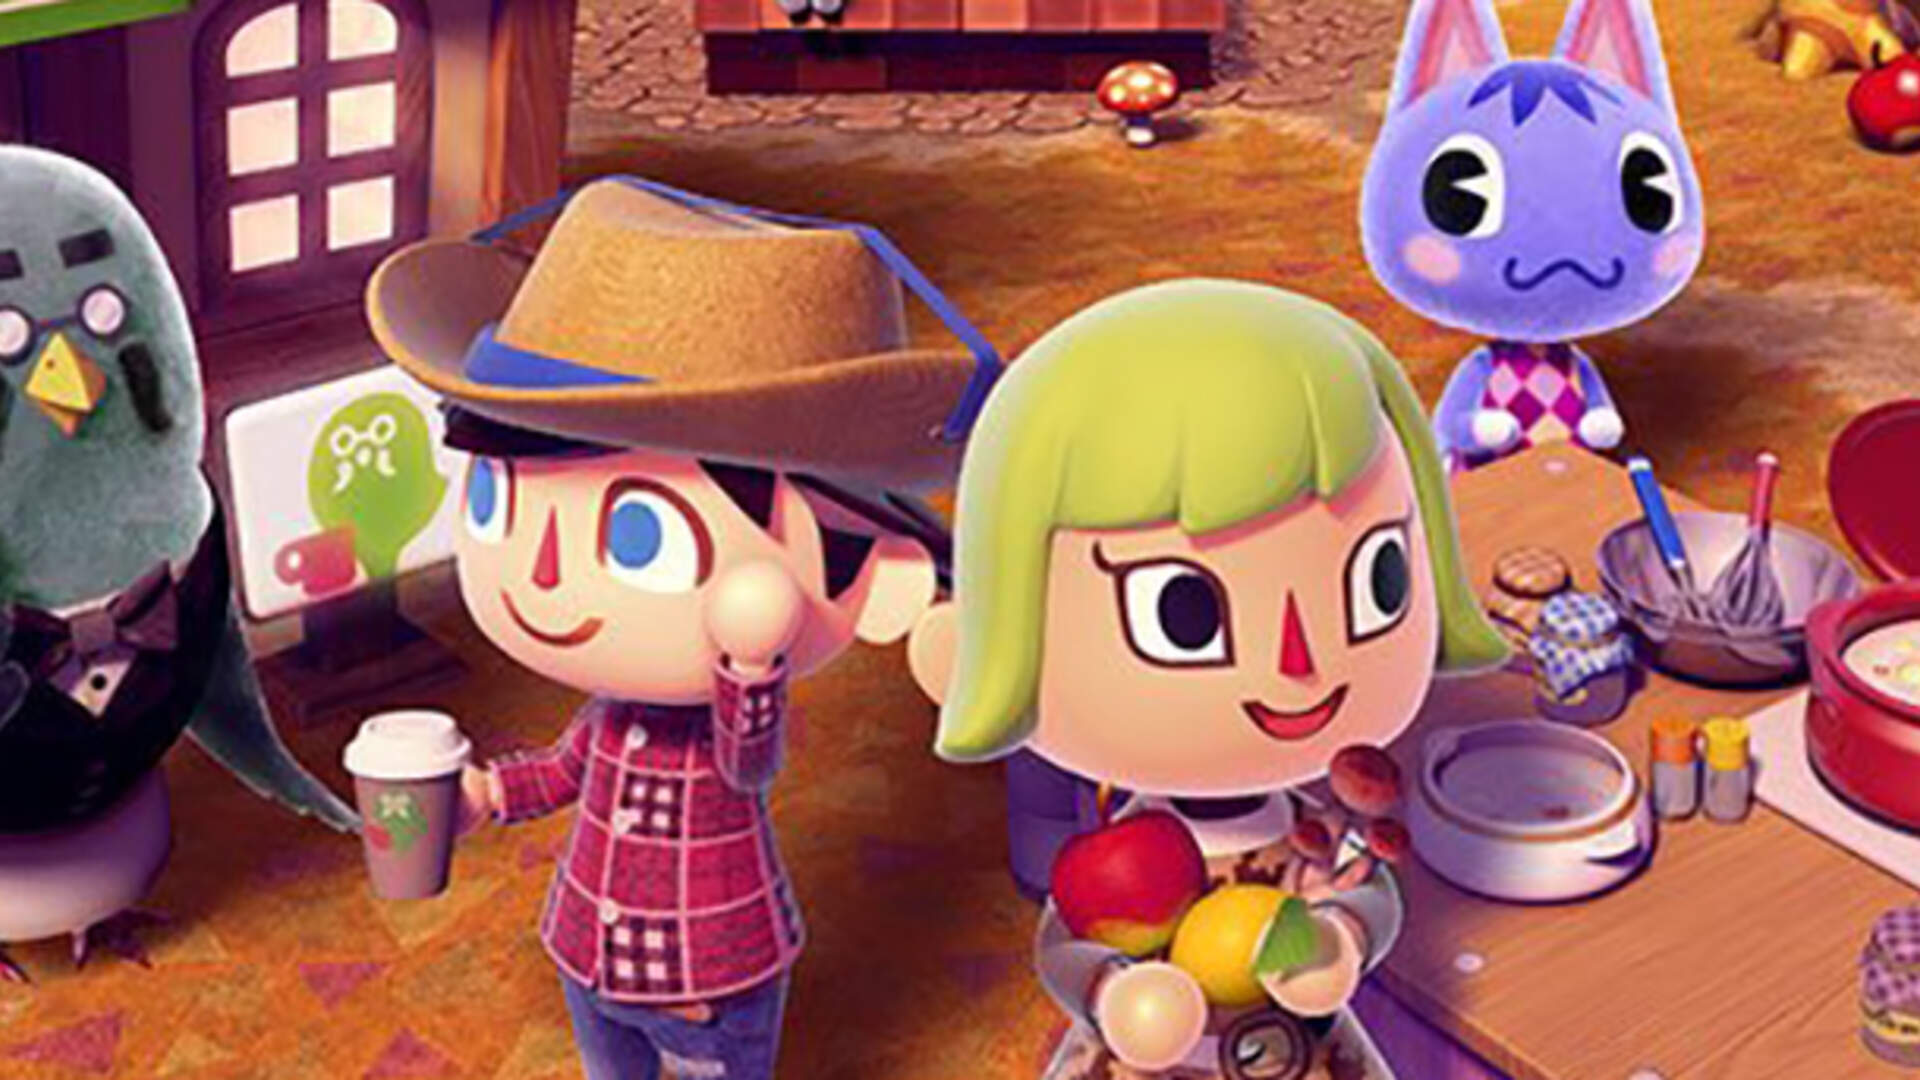 15 Years Later, Looking Back on Animal Crossing's Sugarcoated Dose of Reality